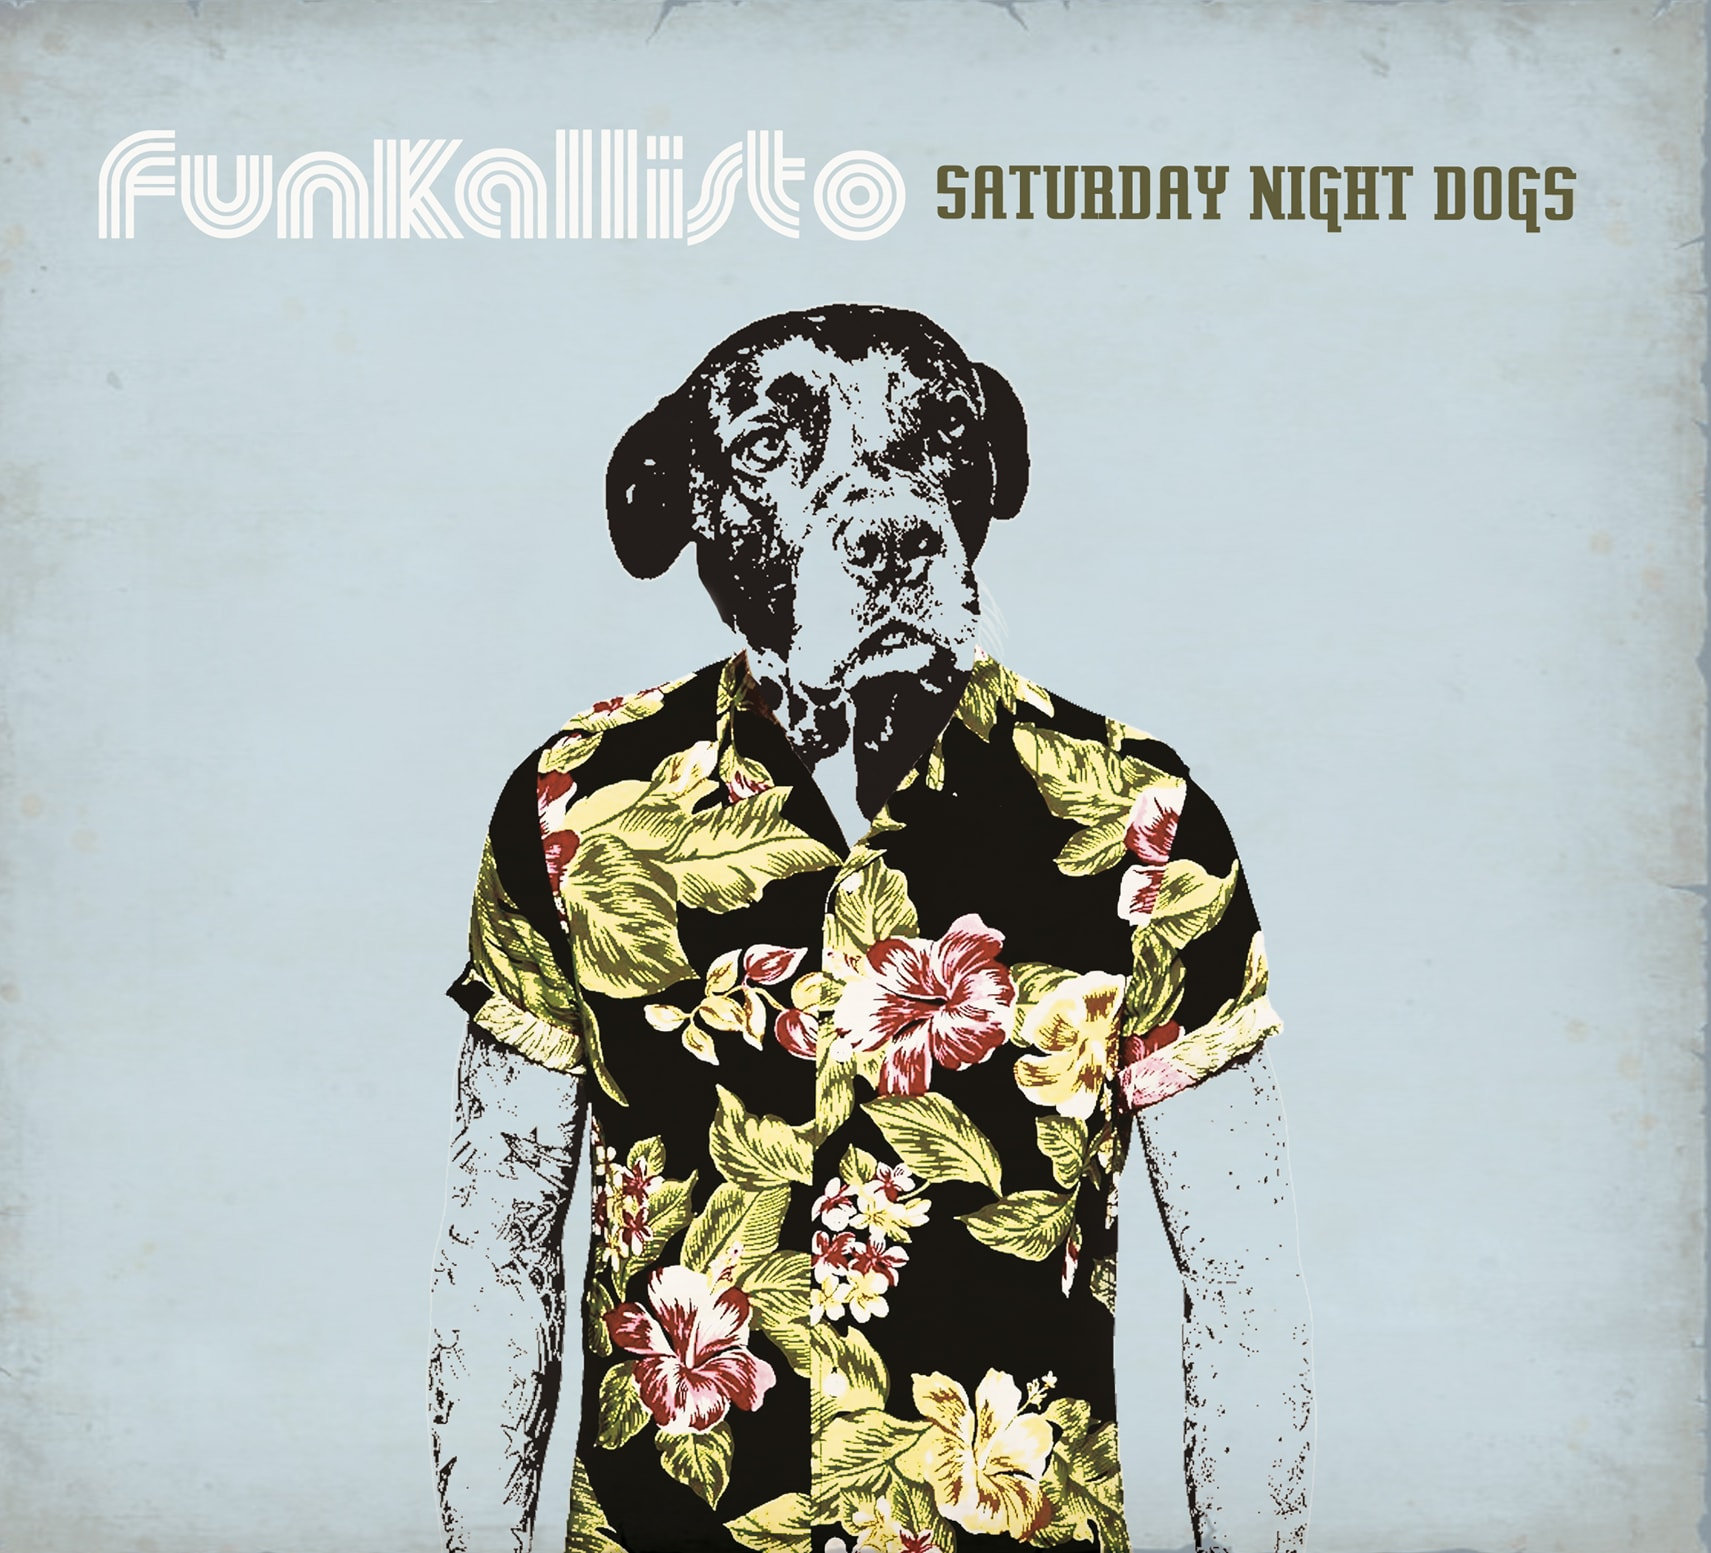 Funkallisto -Saturday Night Dogs 1 - fanzine